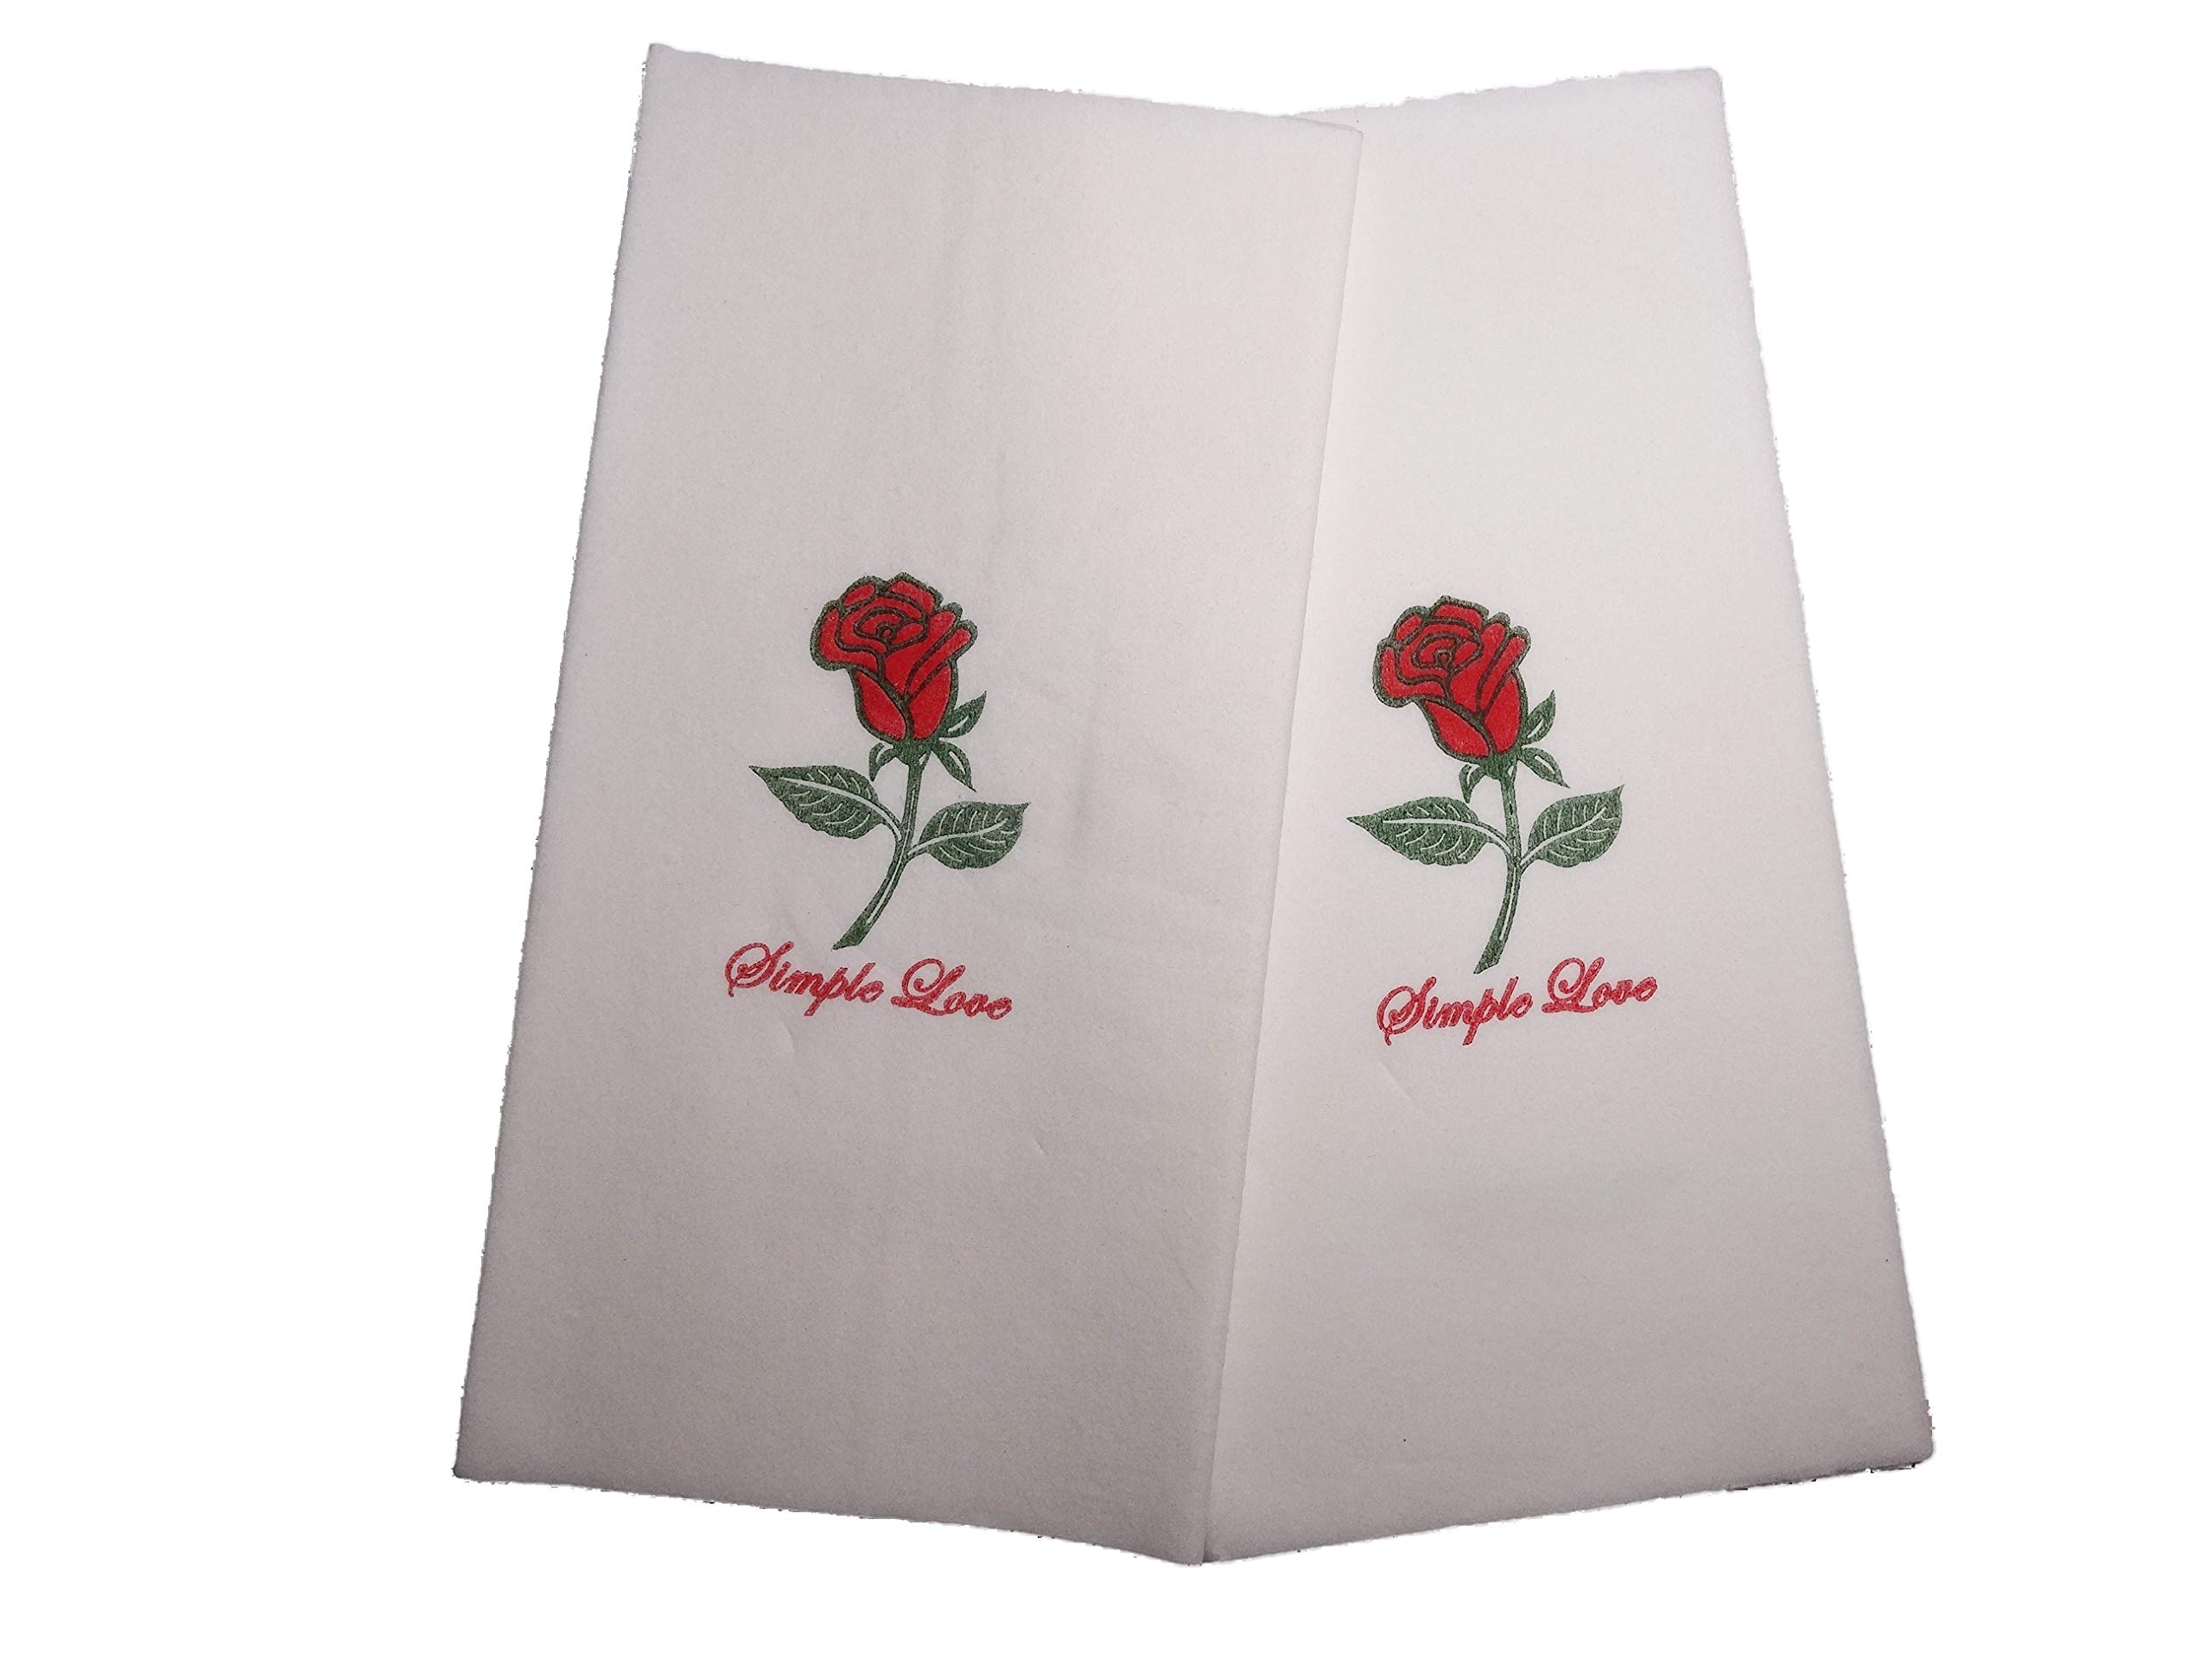 ROSE Premium Dinner Napkins - Towels for Kitchen, Parties, Dinner and events - 75 count.